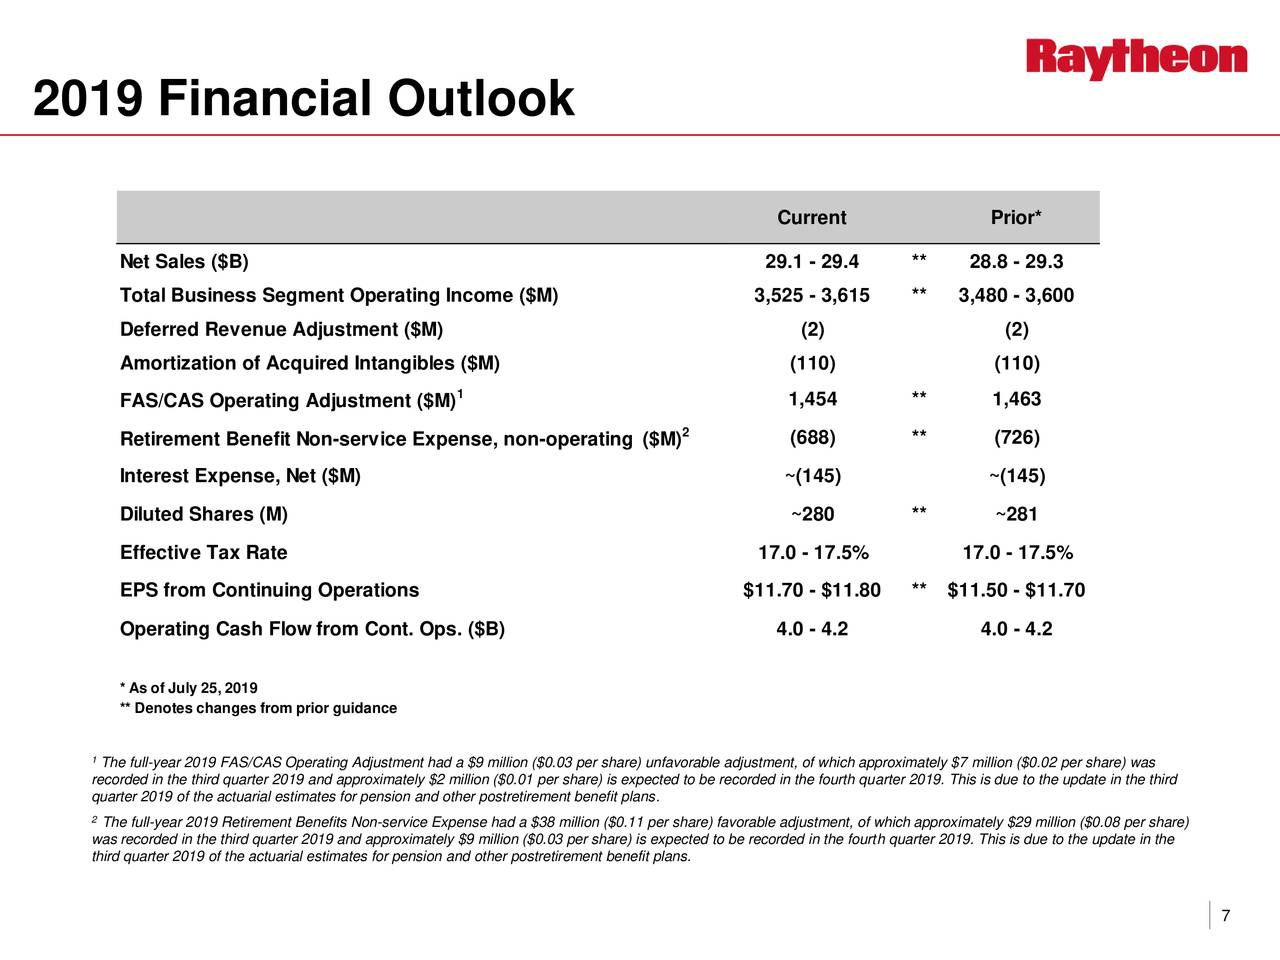 Raytheon Stock Price Rally...